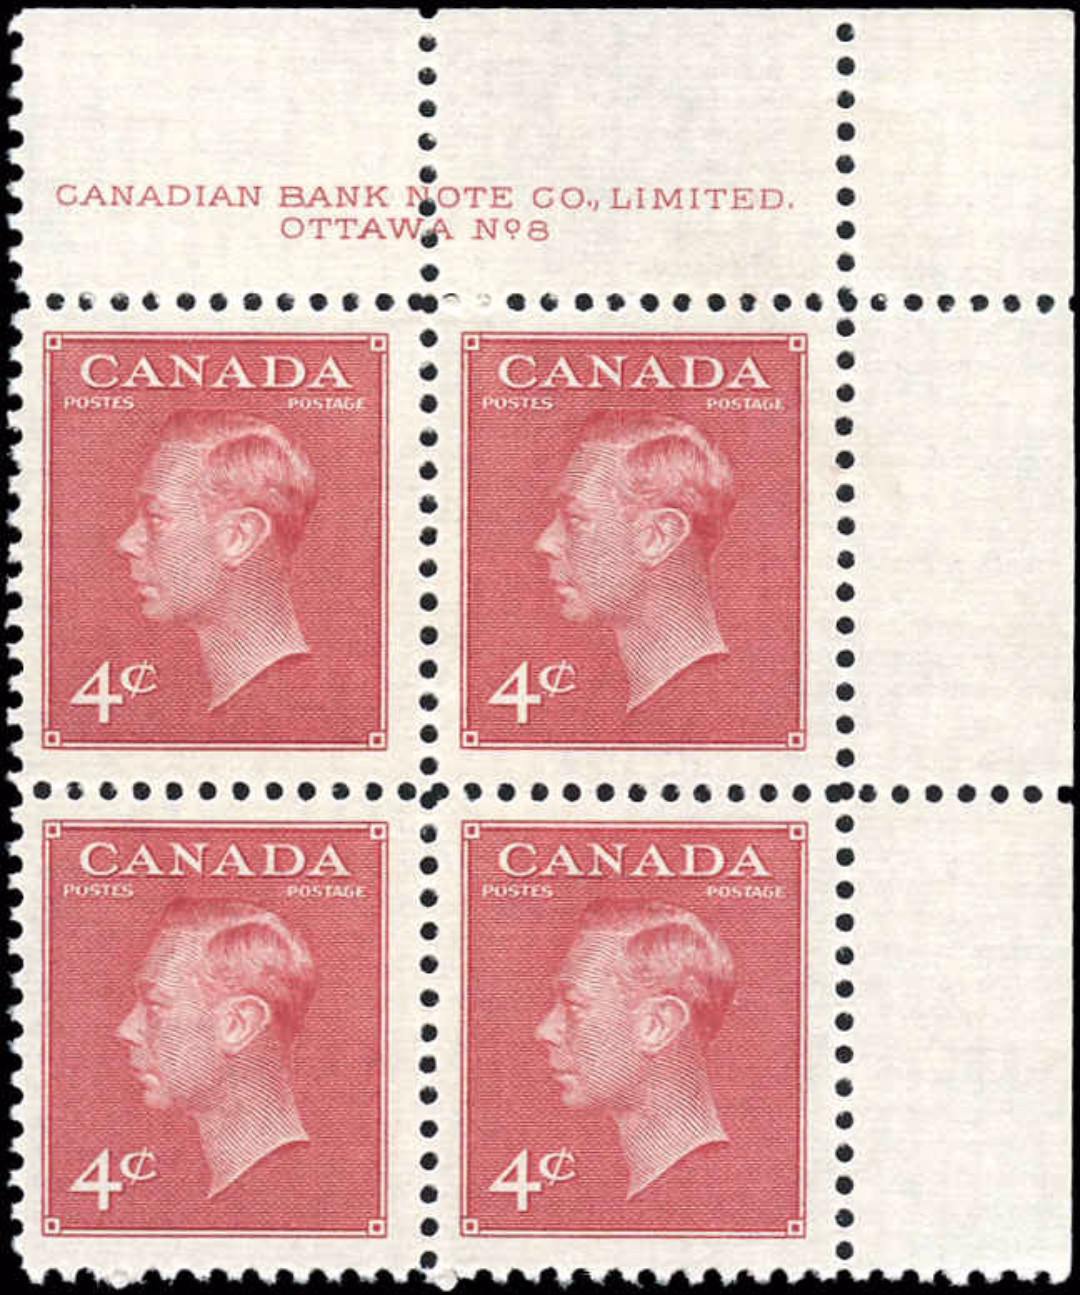 Canada #287, Postes-Postage Issue, F-VF, MNH